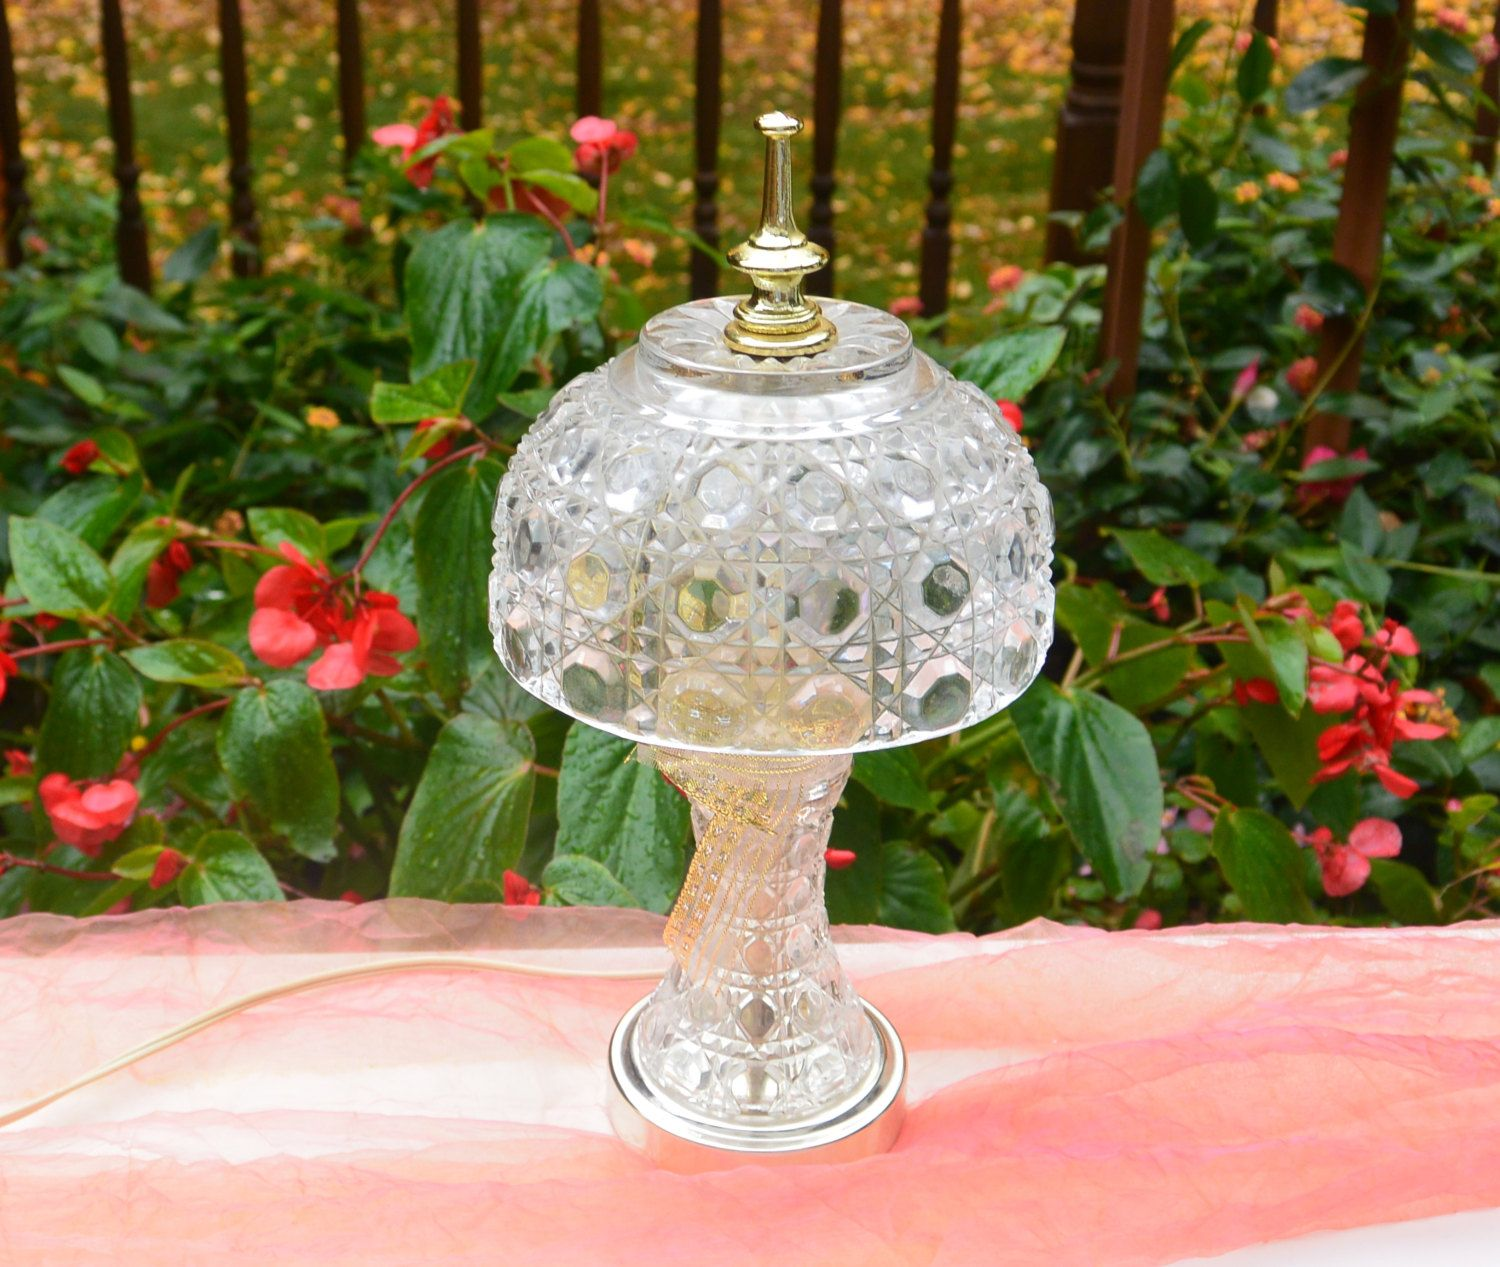 1970's Glam Lamp - Glass, Gold Metal, Night Lamp, Bedside Lamp, Entry Lamp, Bath Lamp - Vintage - Gorgeous! by YPSA on Etsy